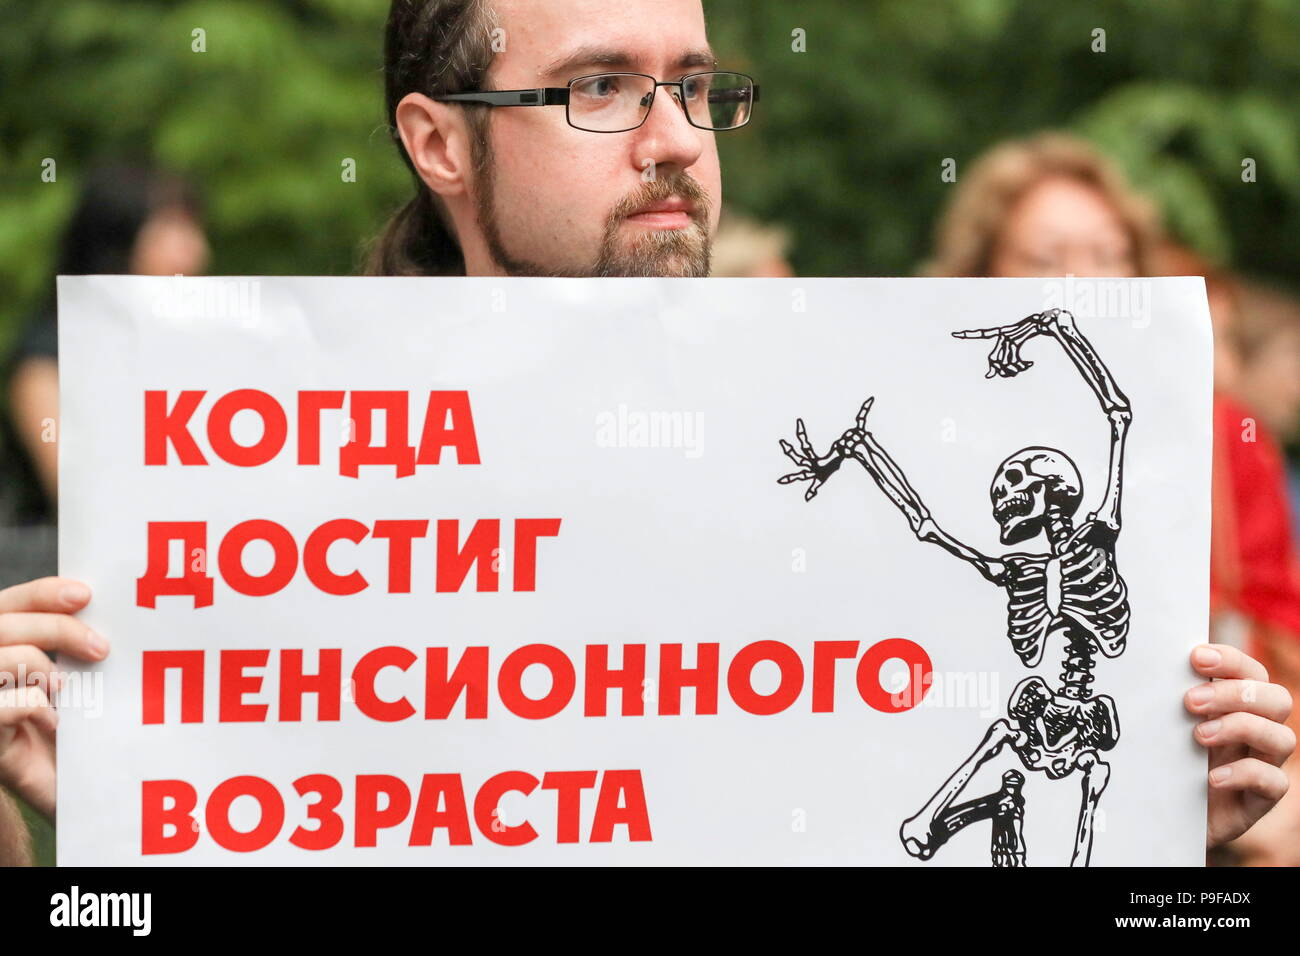 Moscow, Russia. 18th July, 2018. MOSCOW, RUSSIA - JULY 18, 2018: A young man takes part in Moscow's Sokolniki Hyde Park rally against a Russian government proposal to raise the retirement age from 60 to 65 for men, and from 55 to 63 for women within the next two decades. Sergei Savostyanov/TASS Credit: ITAR-TASS News Agency/Alamy Live News - Stock Image